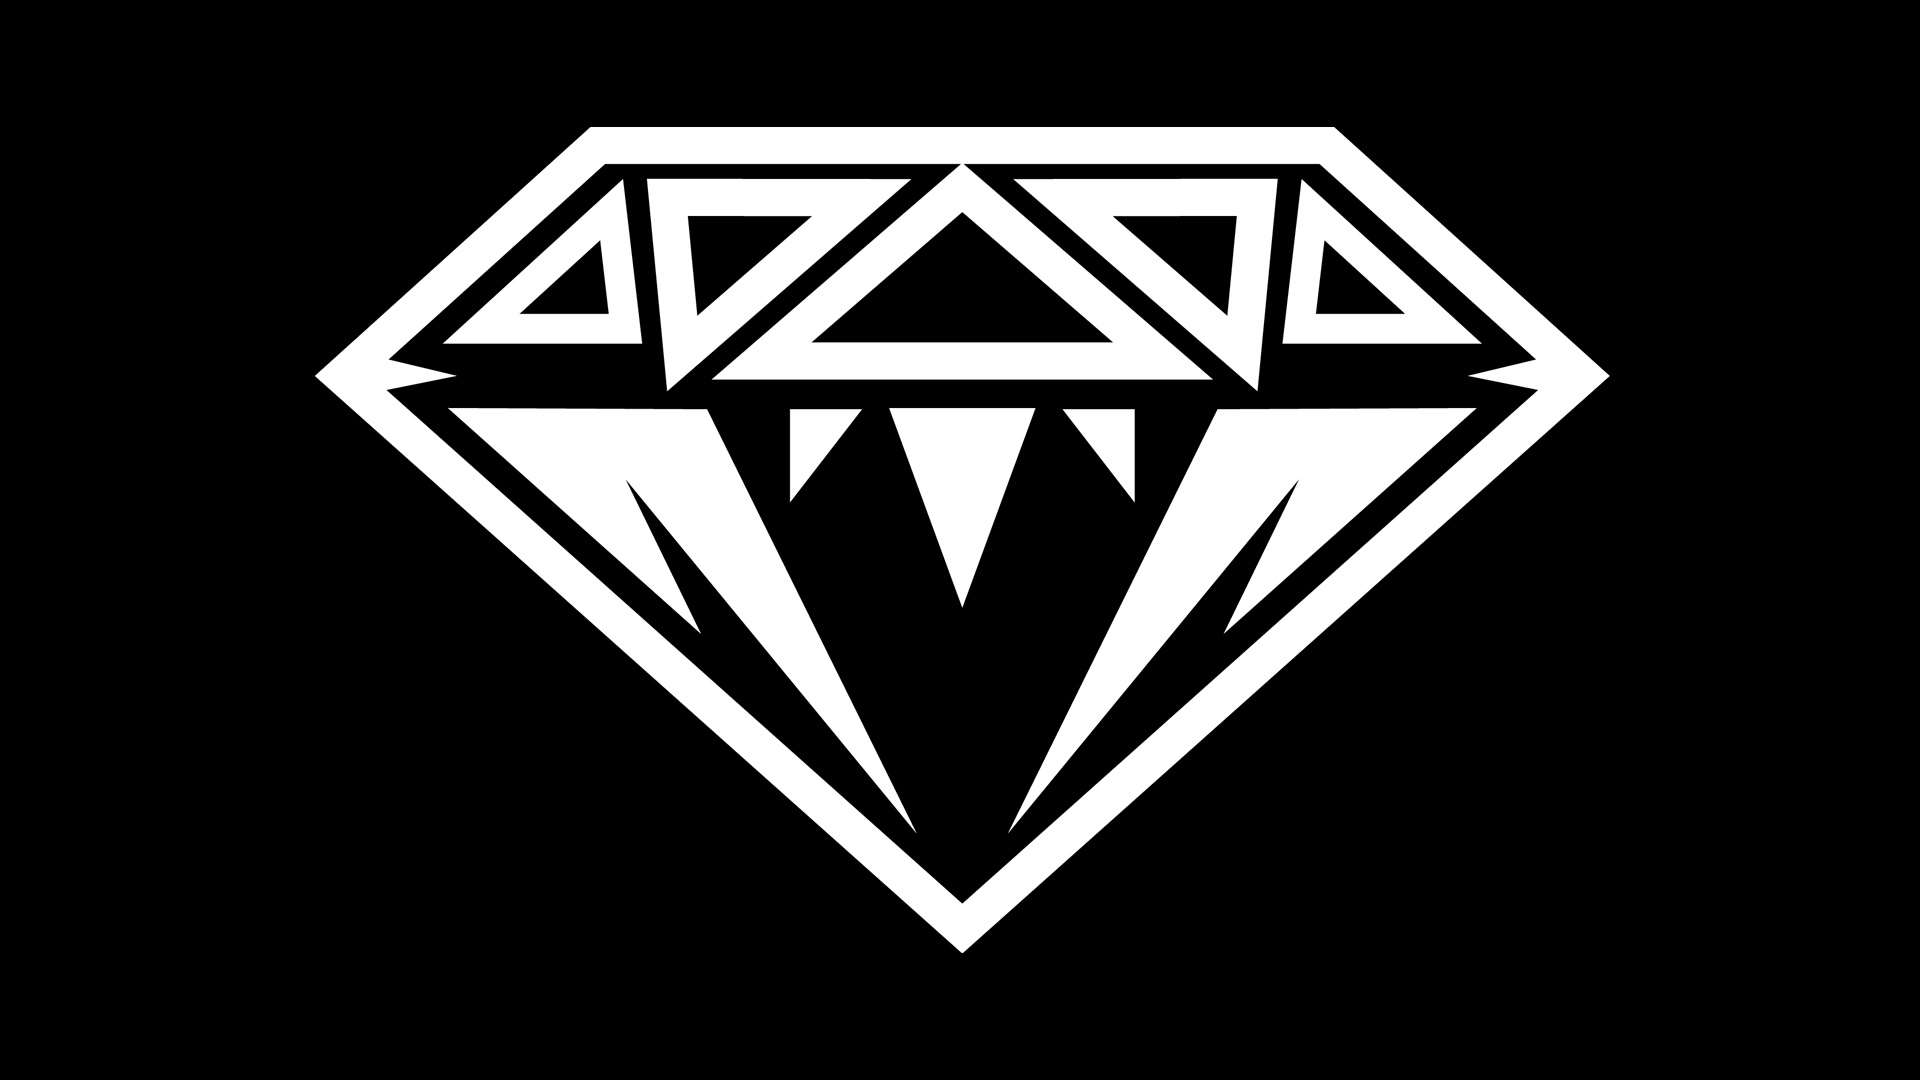 diamond supply co wallpapers diamond hd 122280 hd wallpaper backgrounds download diamond supply co wallpapers diamond